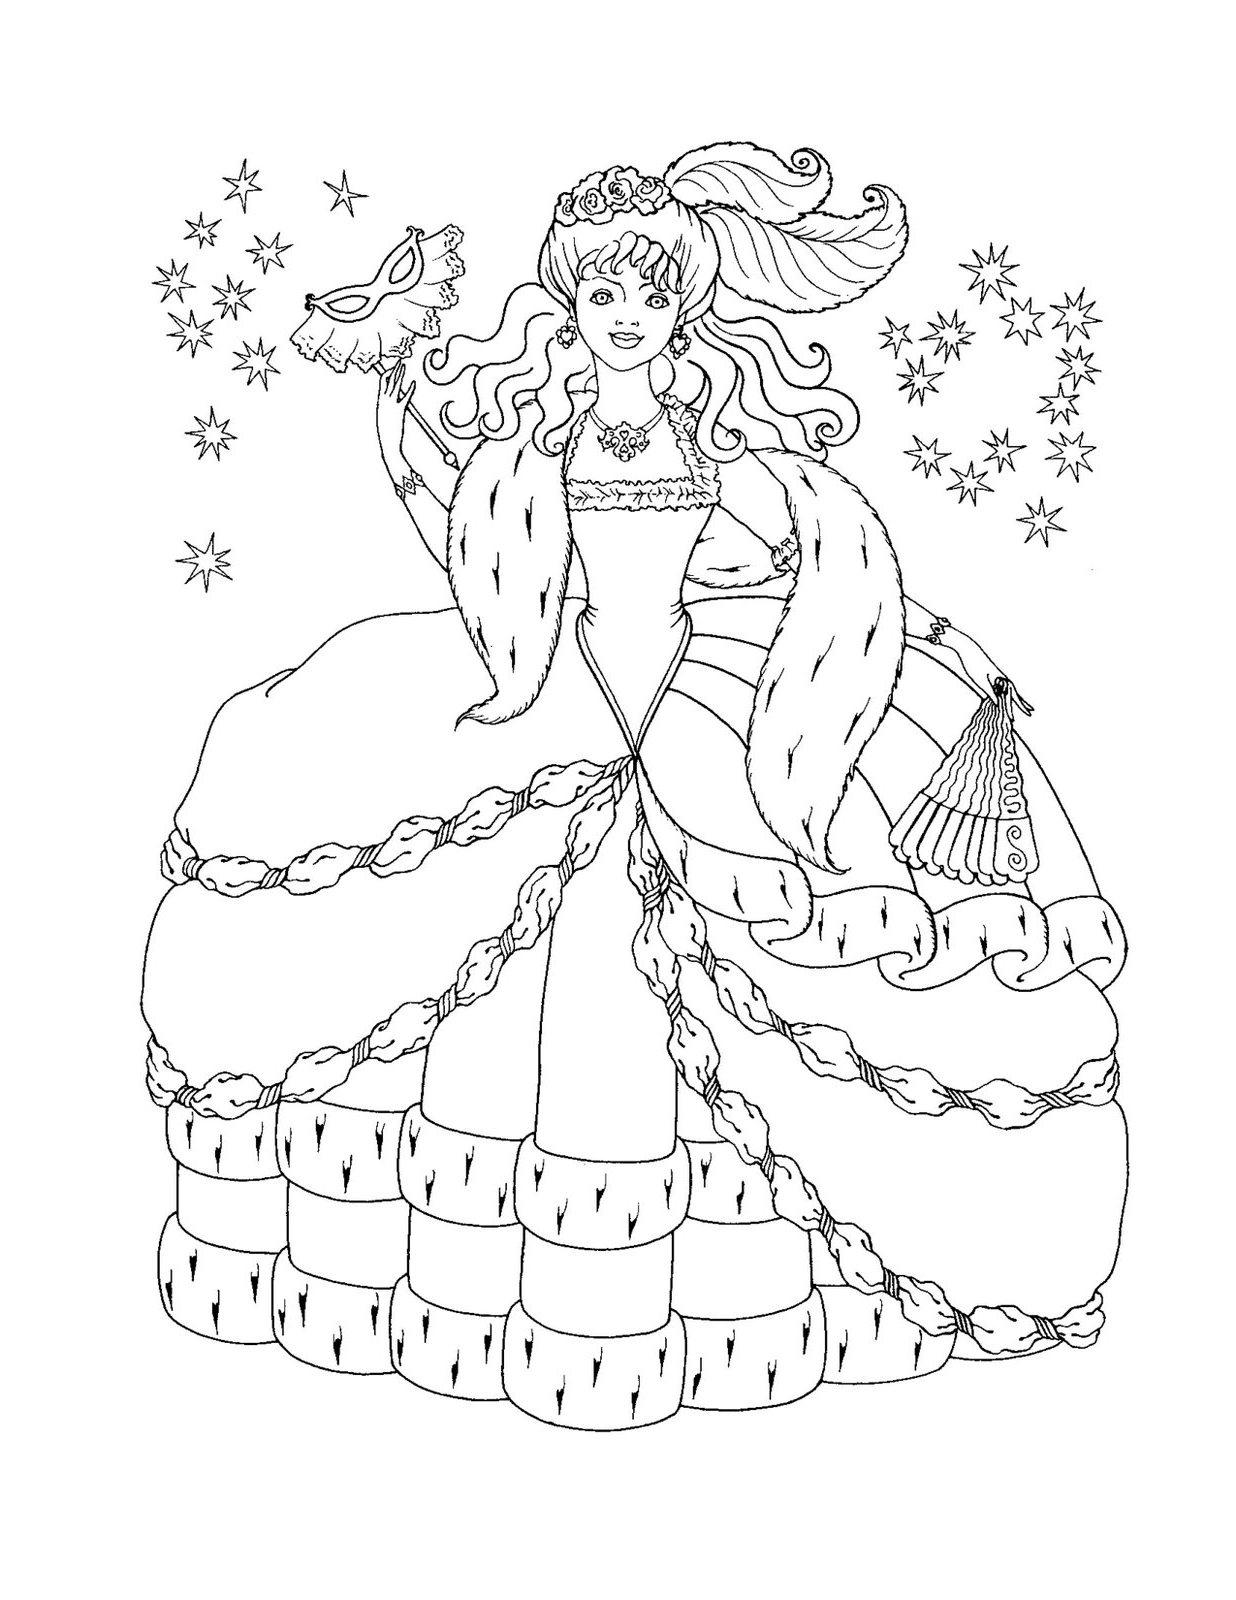 Free Printable Disney Princess Coloring Pages For Kids Princess Coloring Image